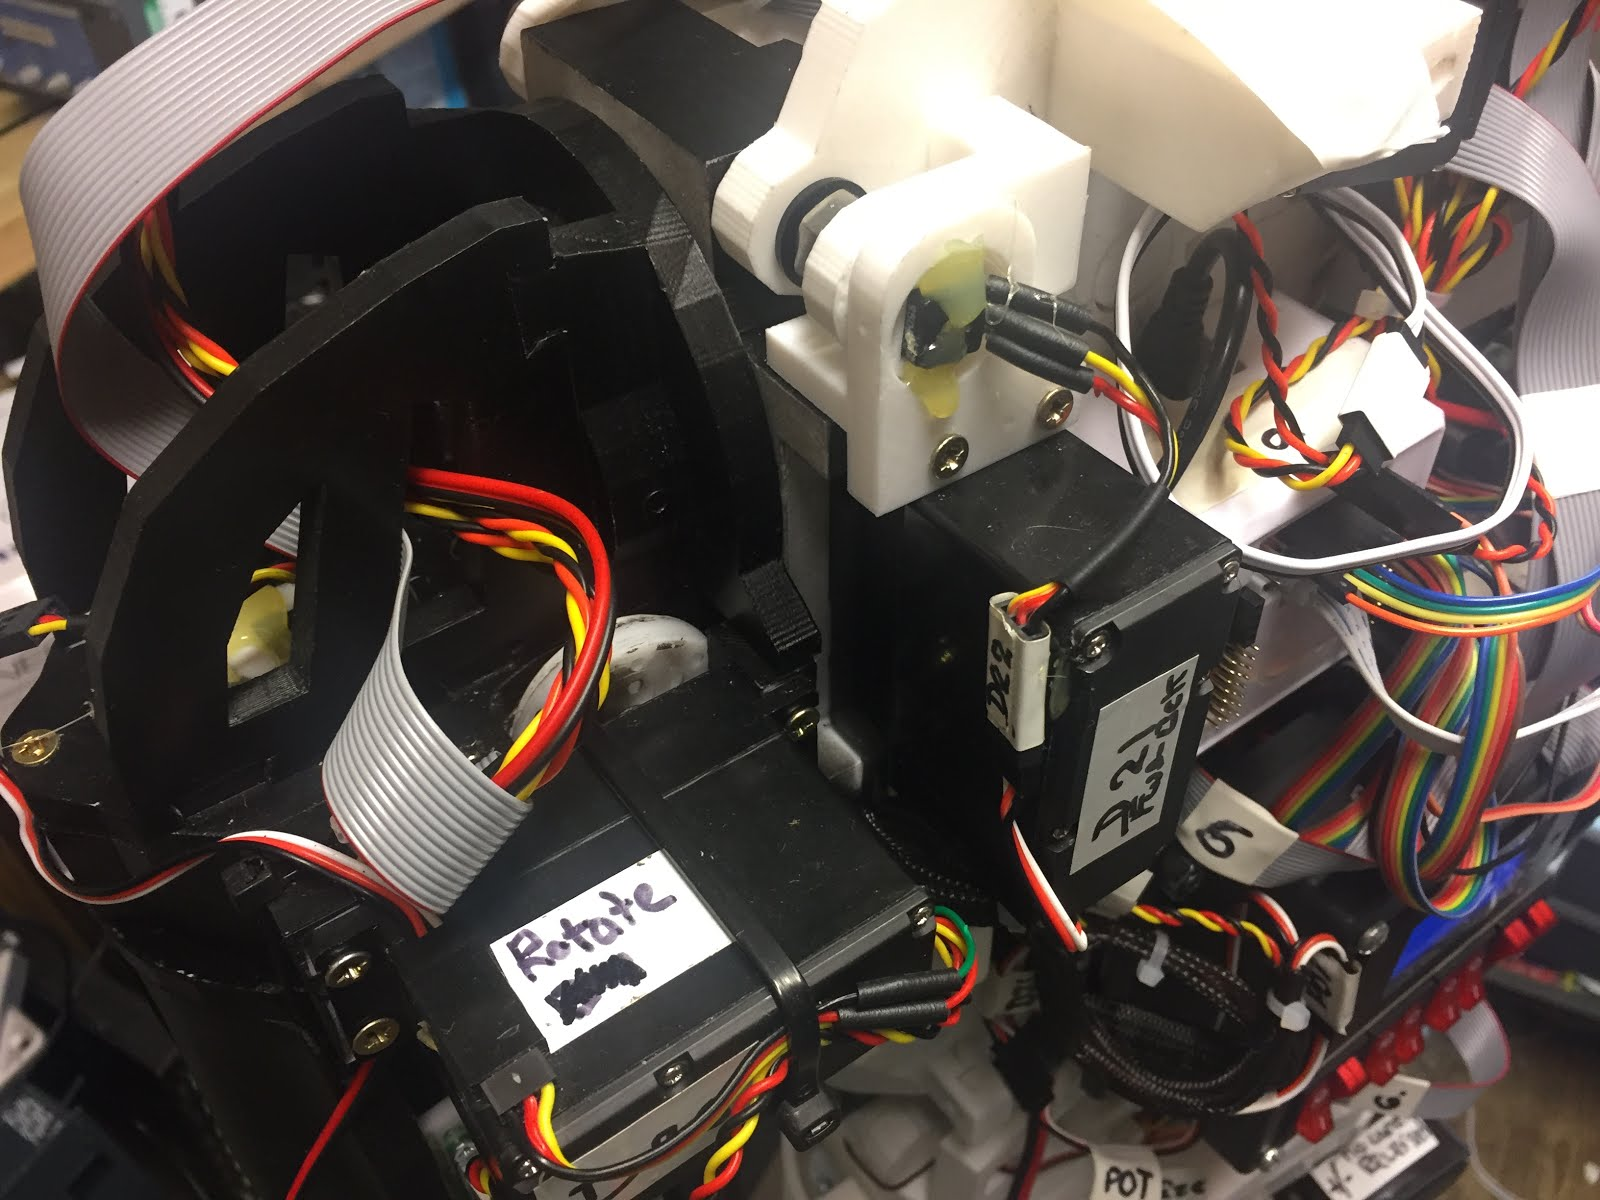 Inmoov Control System Servo Wiring Diagram Http Wwwezrobotcom Community Forum Posts Finally With The Back Cover On I Am Printing A Plates For Top Section And Surround Plate Power Switch Box Plus Some Blanks Two